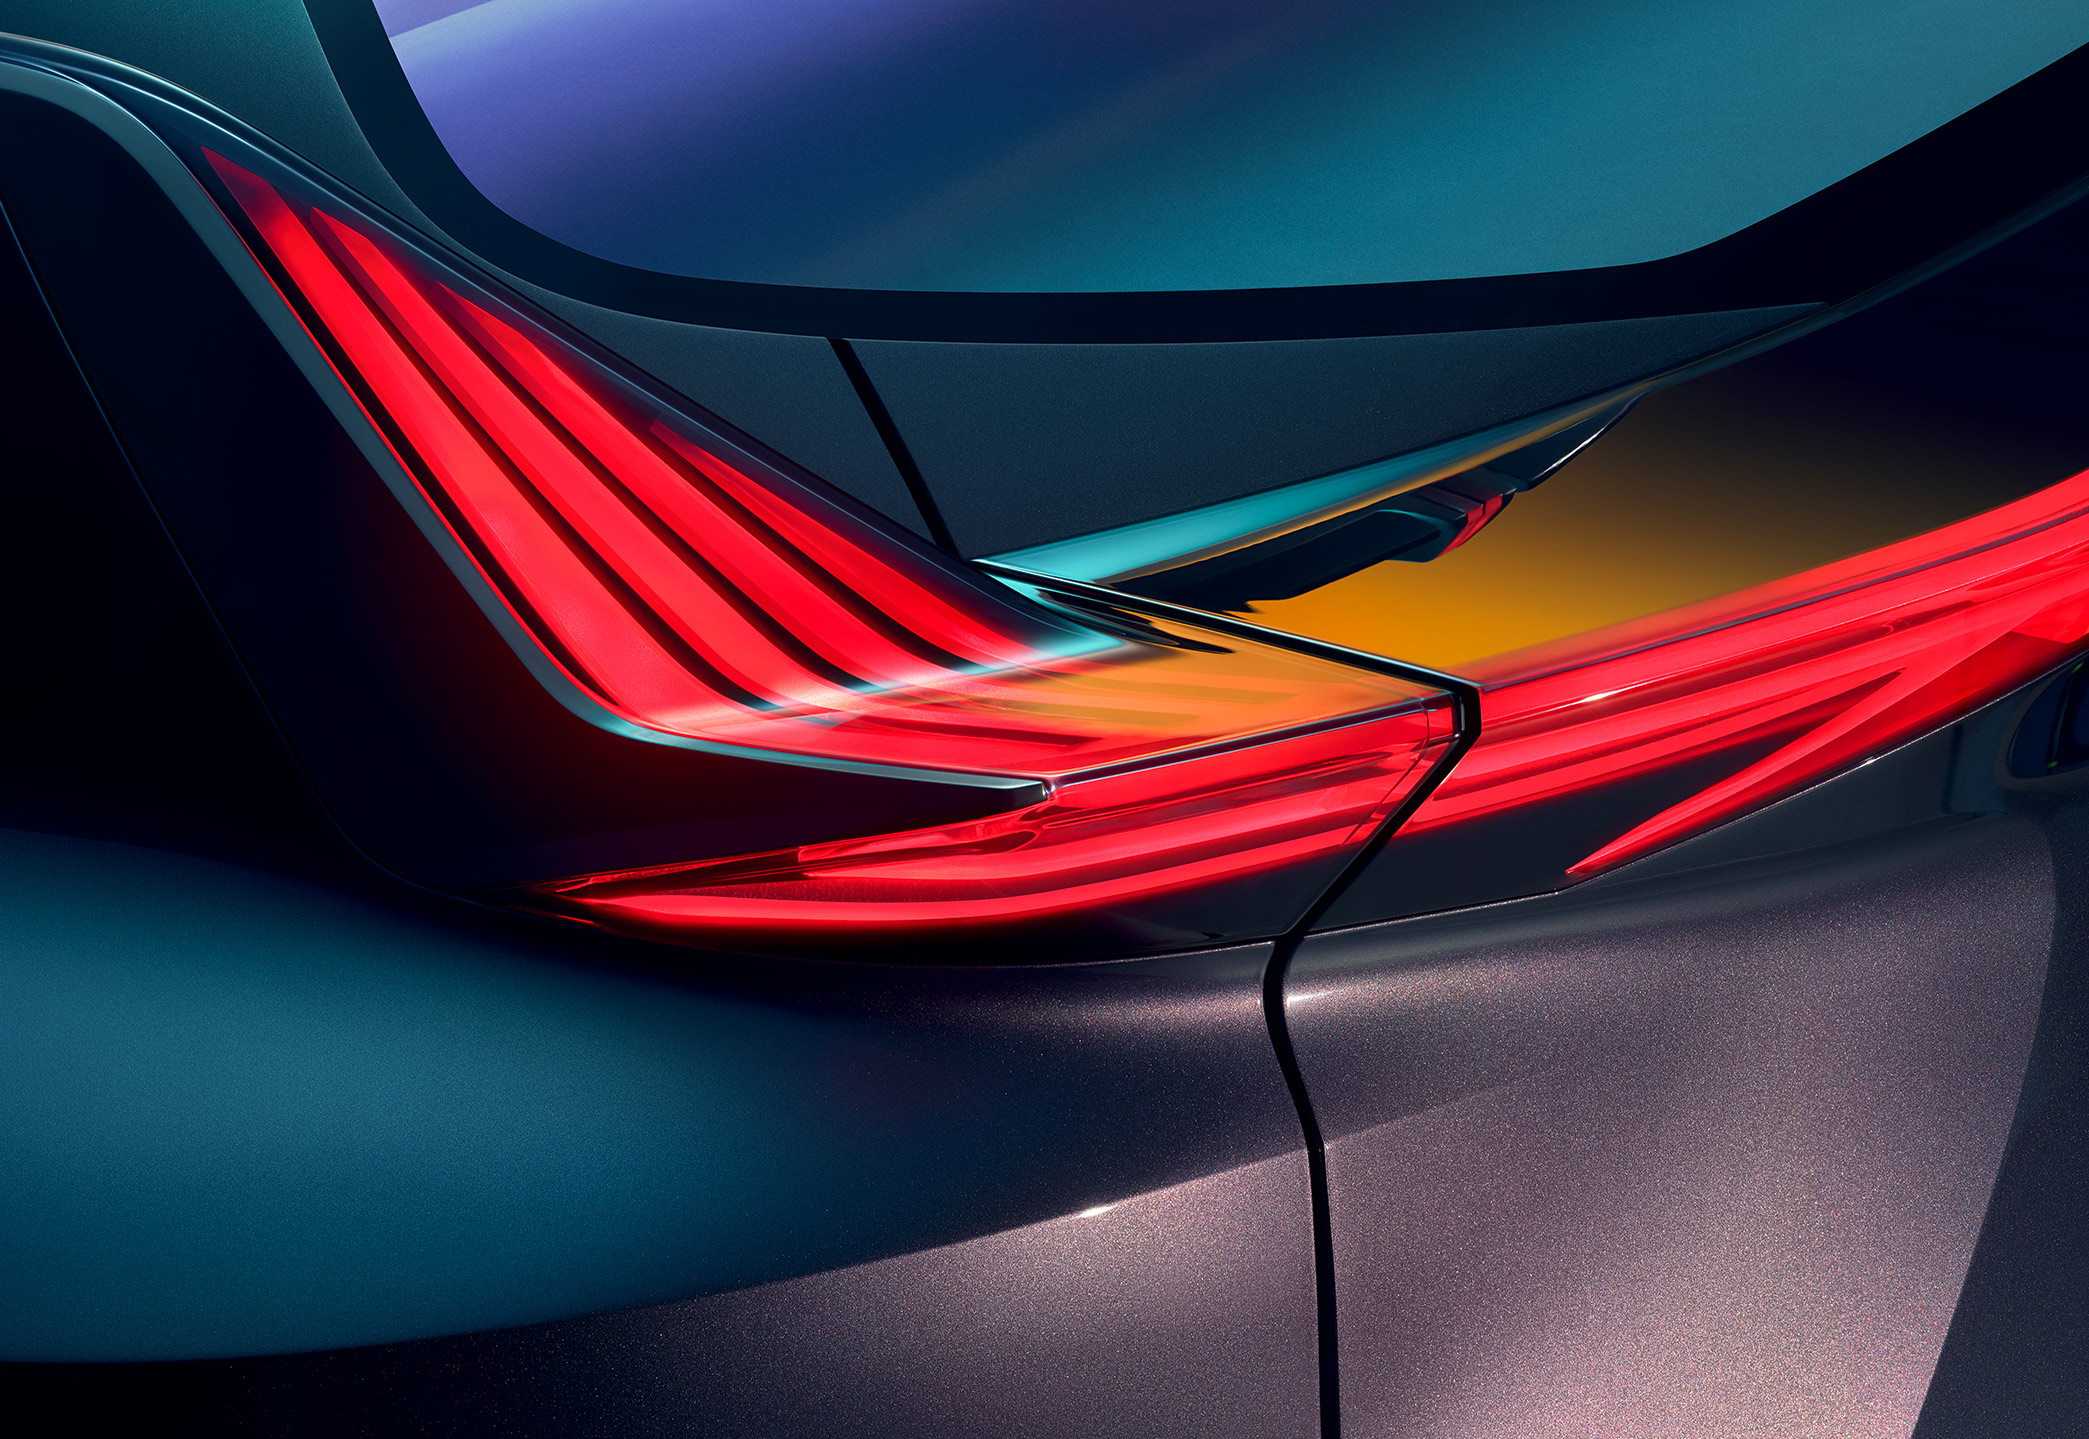 Art direction for Lexus 'UX' concept car. Photography by Qiu Yang (2018)